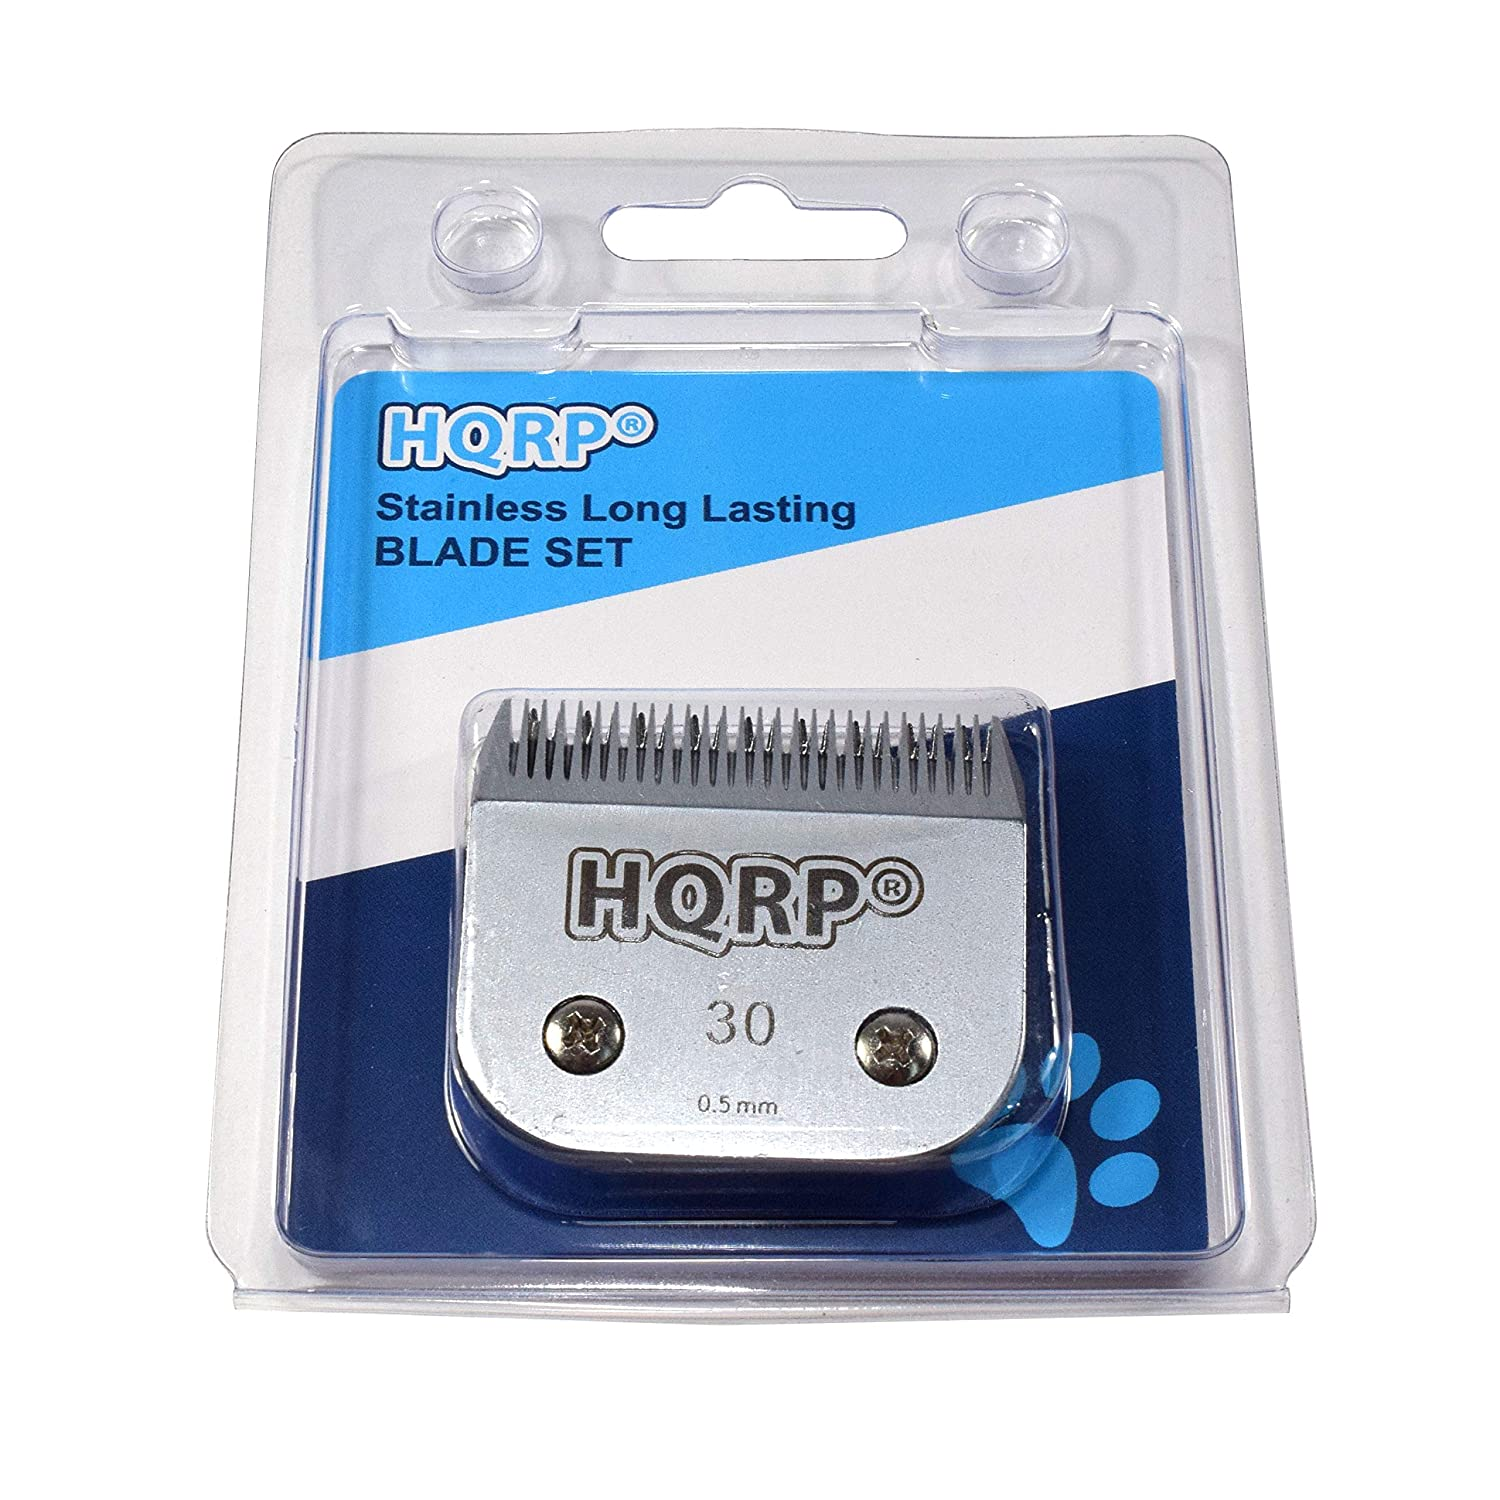 AGC2 22465 HQRP Size-30 Animal Clipper Blade for Andis AGC 22345 AGC2 22360 AGC 22350 HQRP Coaster AGC2 22445 AGC2 22440 AGC 22545 AGC2 23085 Pet Grooming AGC2 22405